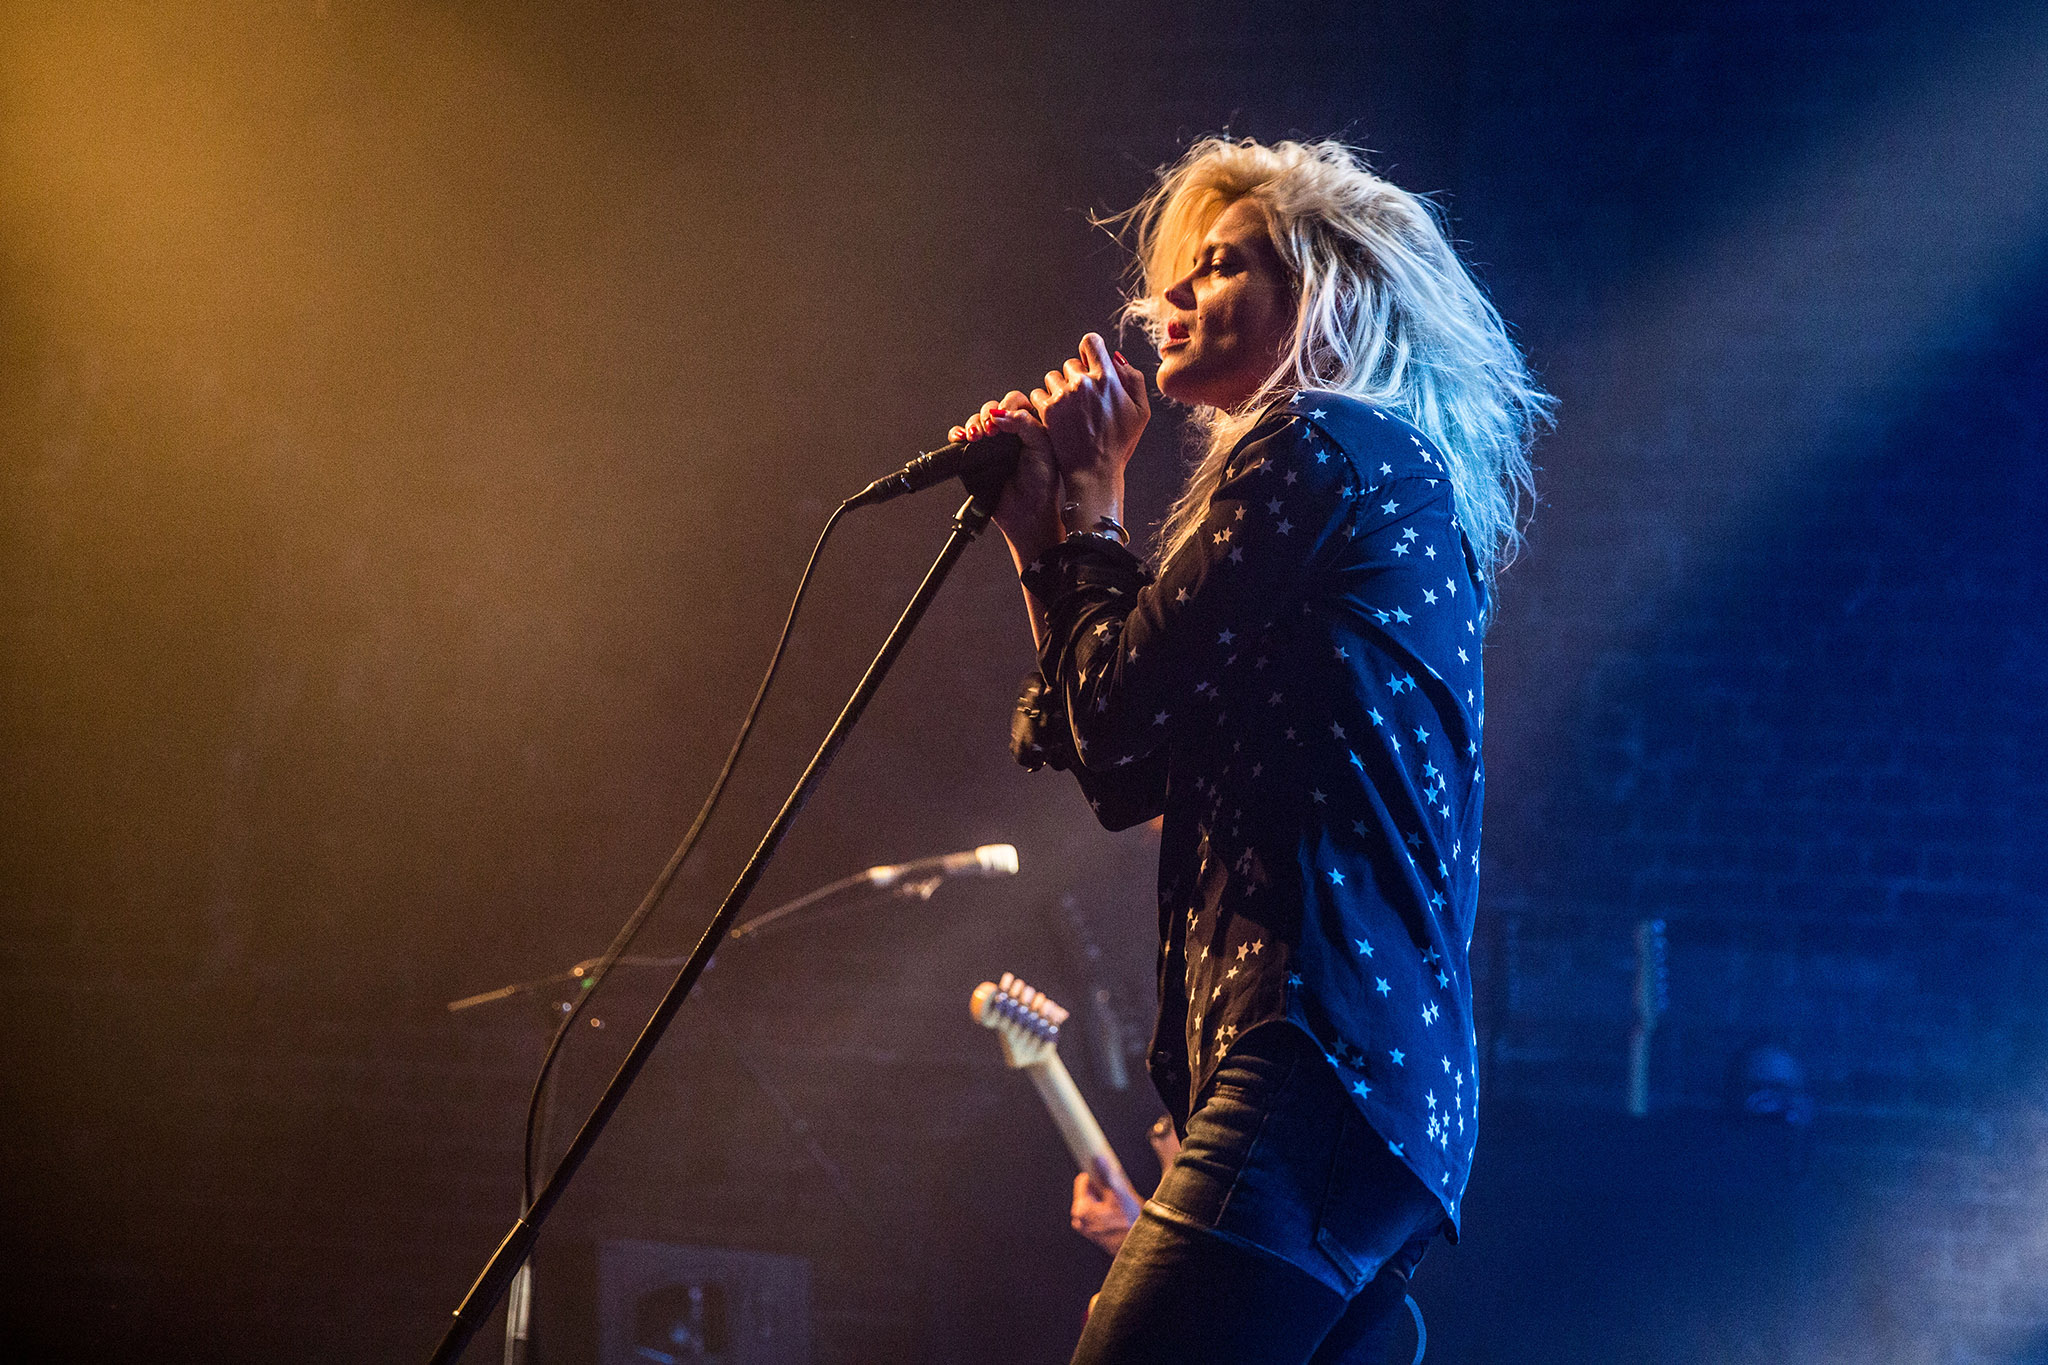 Watch The Kills perform 'Heart of a Dog' live